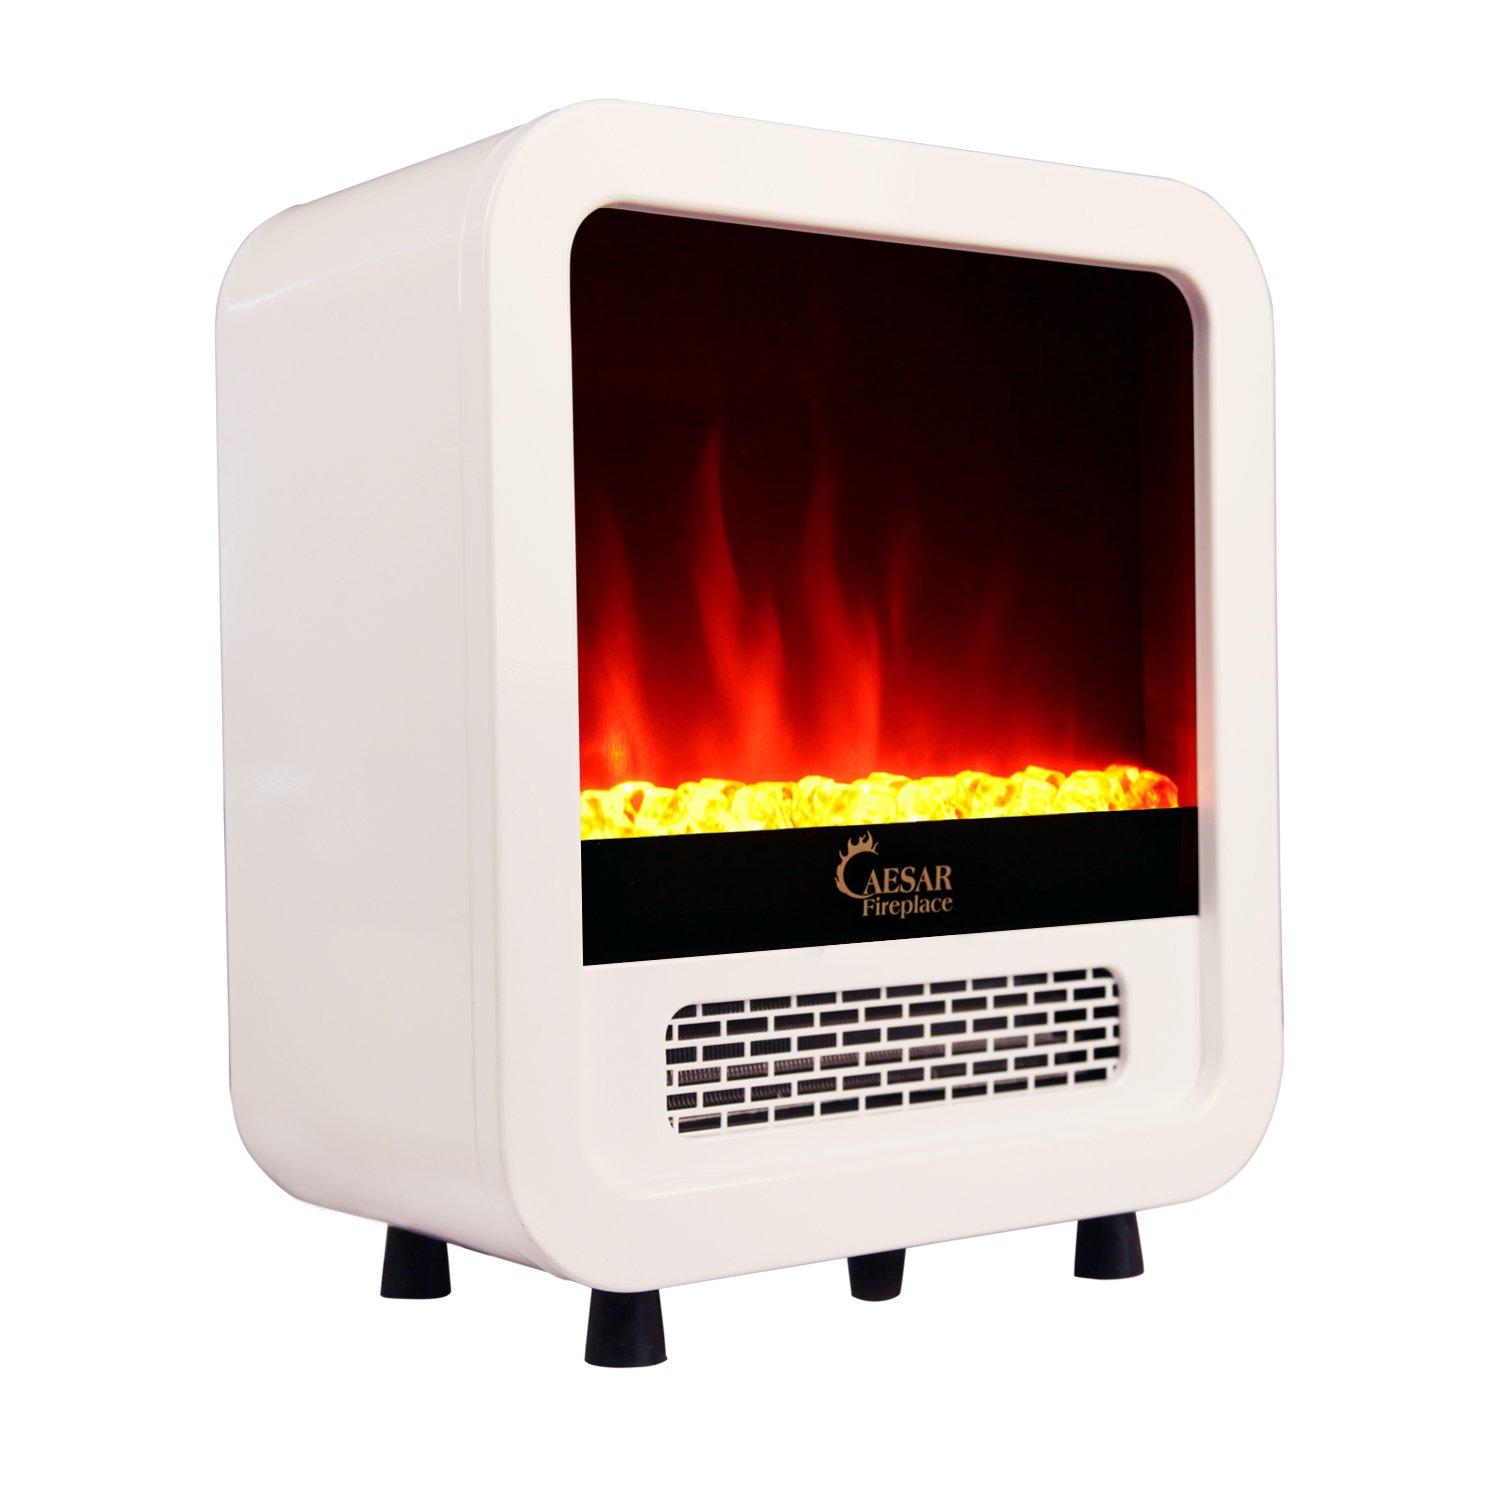 Bedroom Fireplace Heater Caesar Hardware Portable Mini Indoor Compact Freestanding